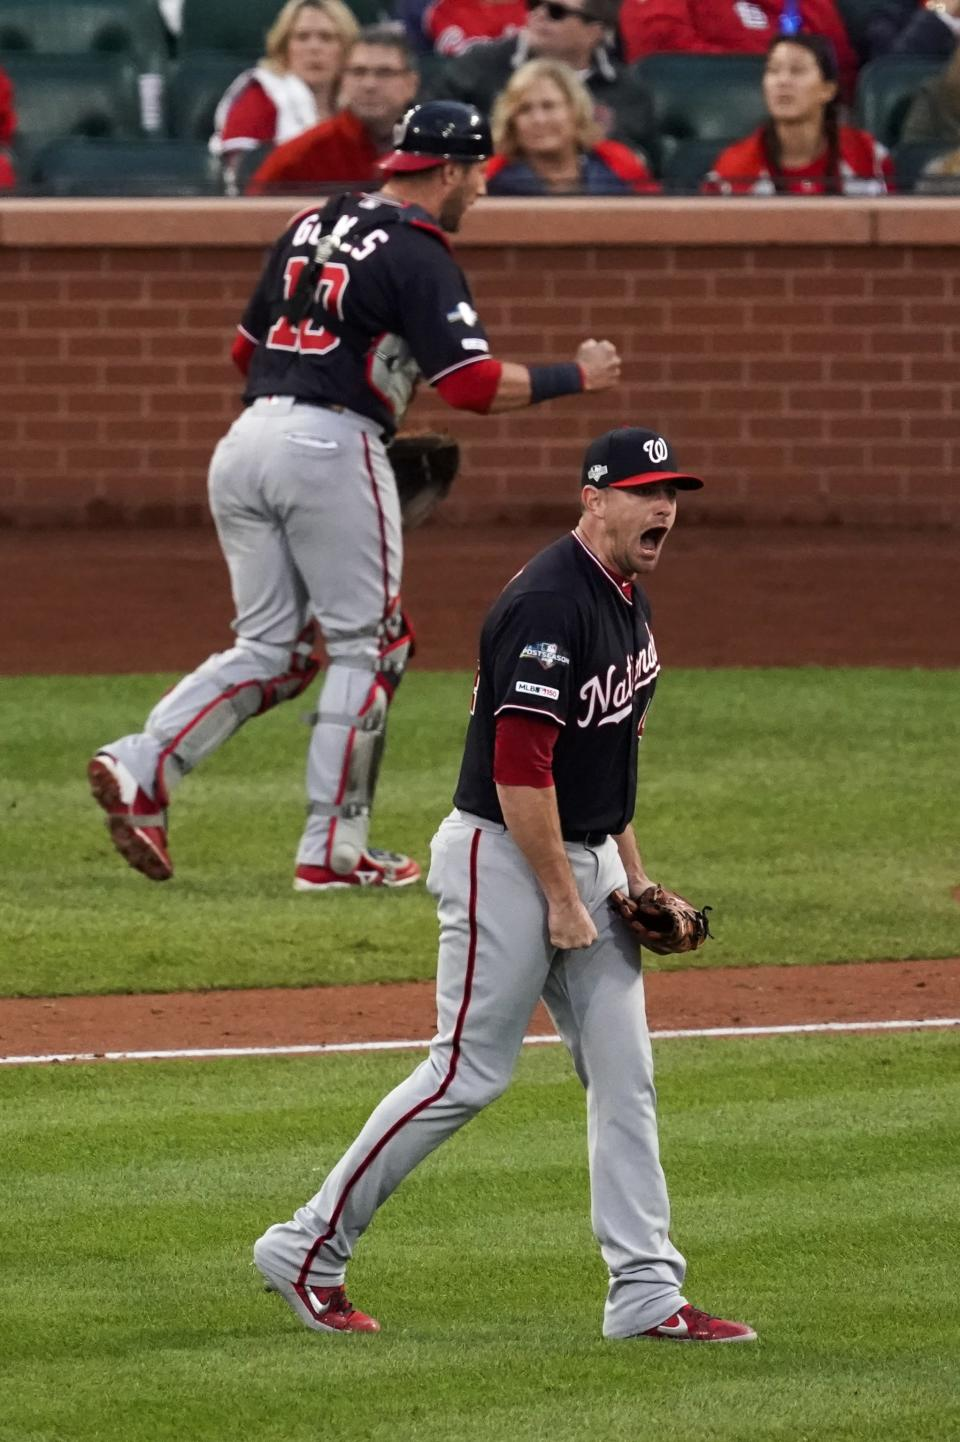 Washington Nationals' Daniel Hudson and Yan Gomes celebrate after Game 2 of the baseball National League Championship Series against the St. Louis Cardinals Saturday, Oct. 12, 2019, in St. Louis. The Nationals won 3-1 to take a 2-0 lead in the series. (AP Photo/Charlie Riedel)